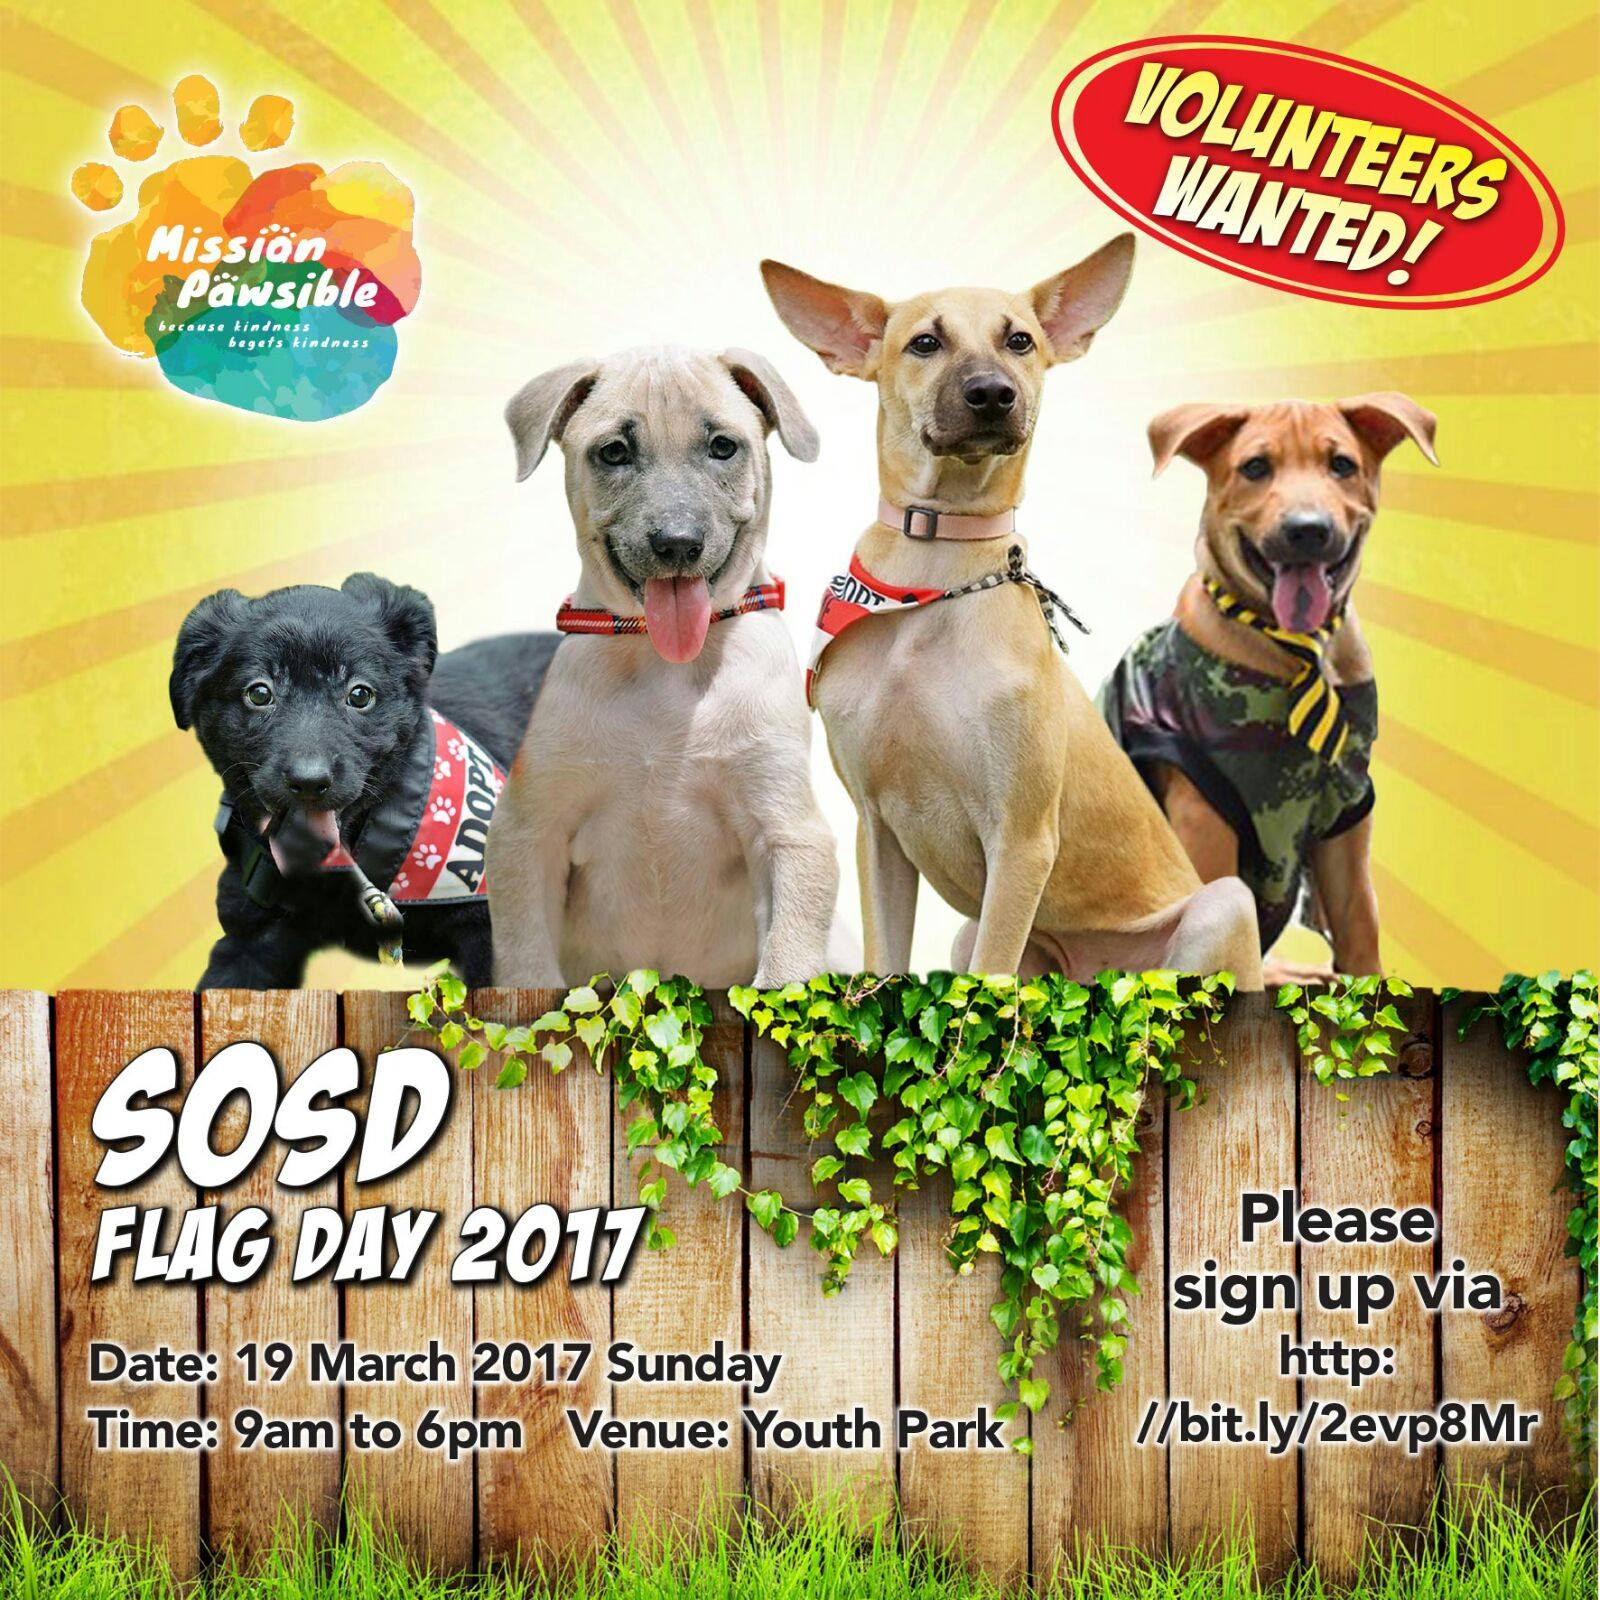 2017 Flagday Mission Pawsible